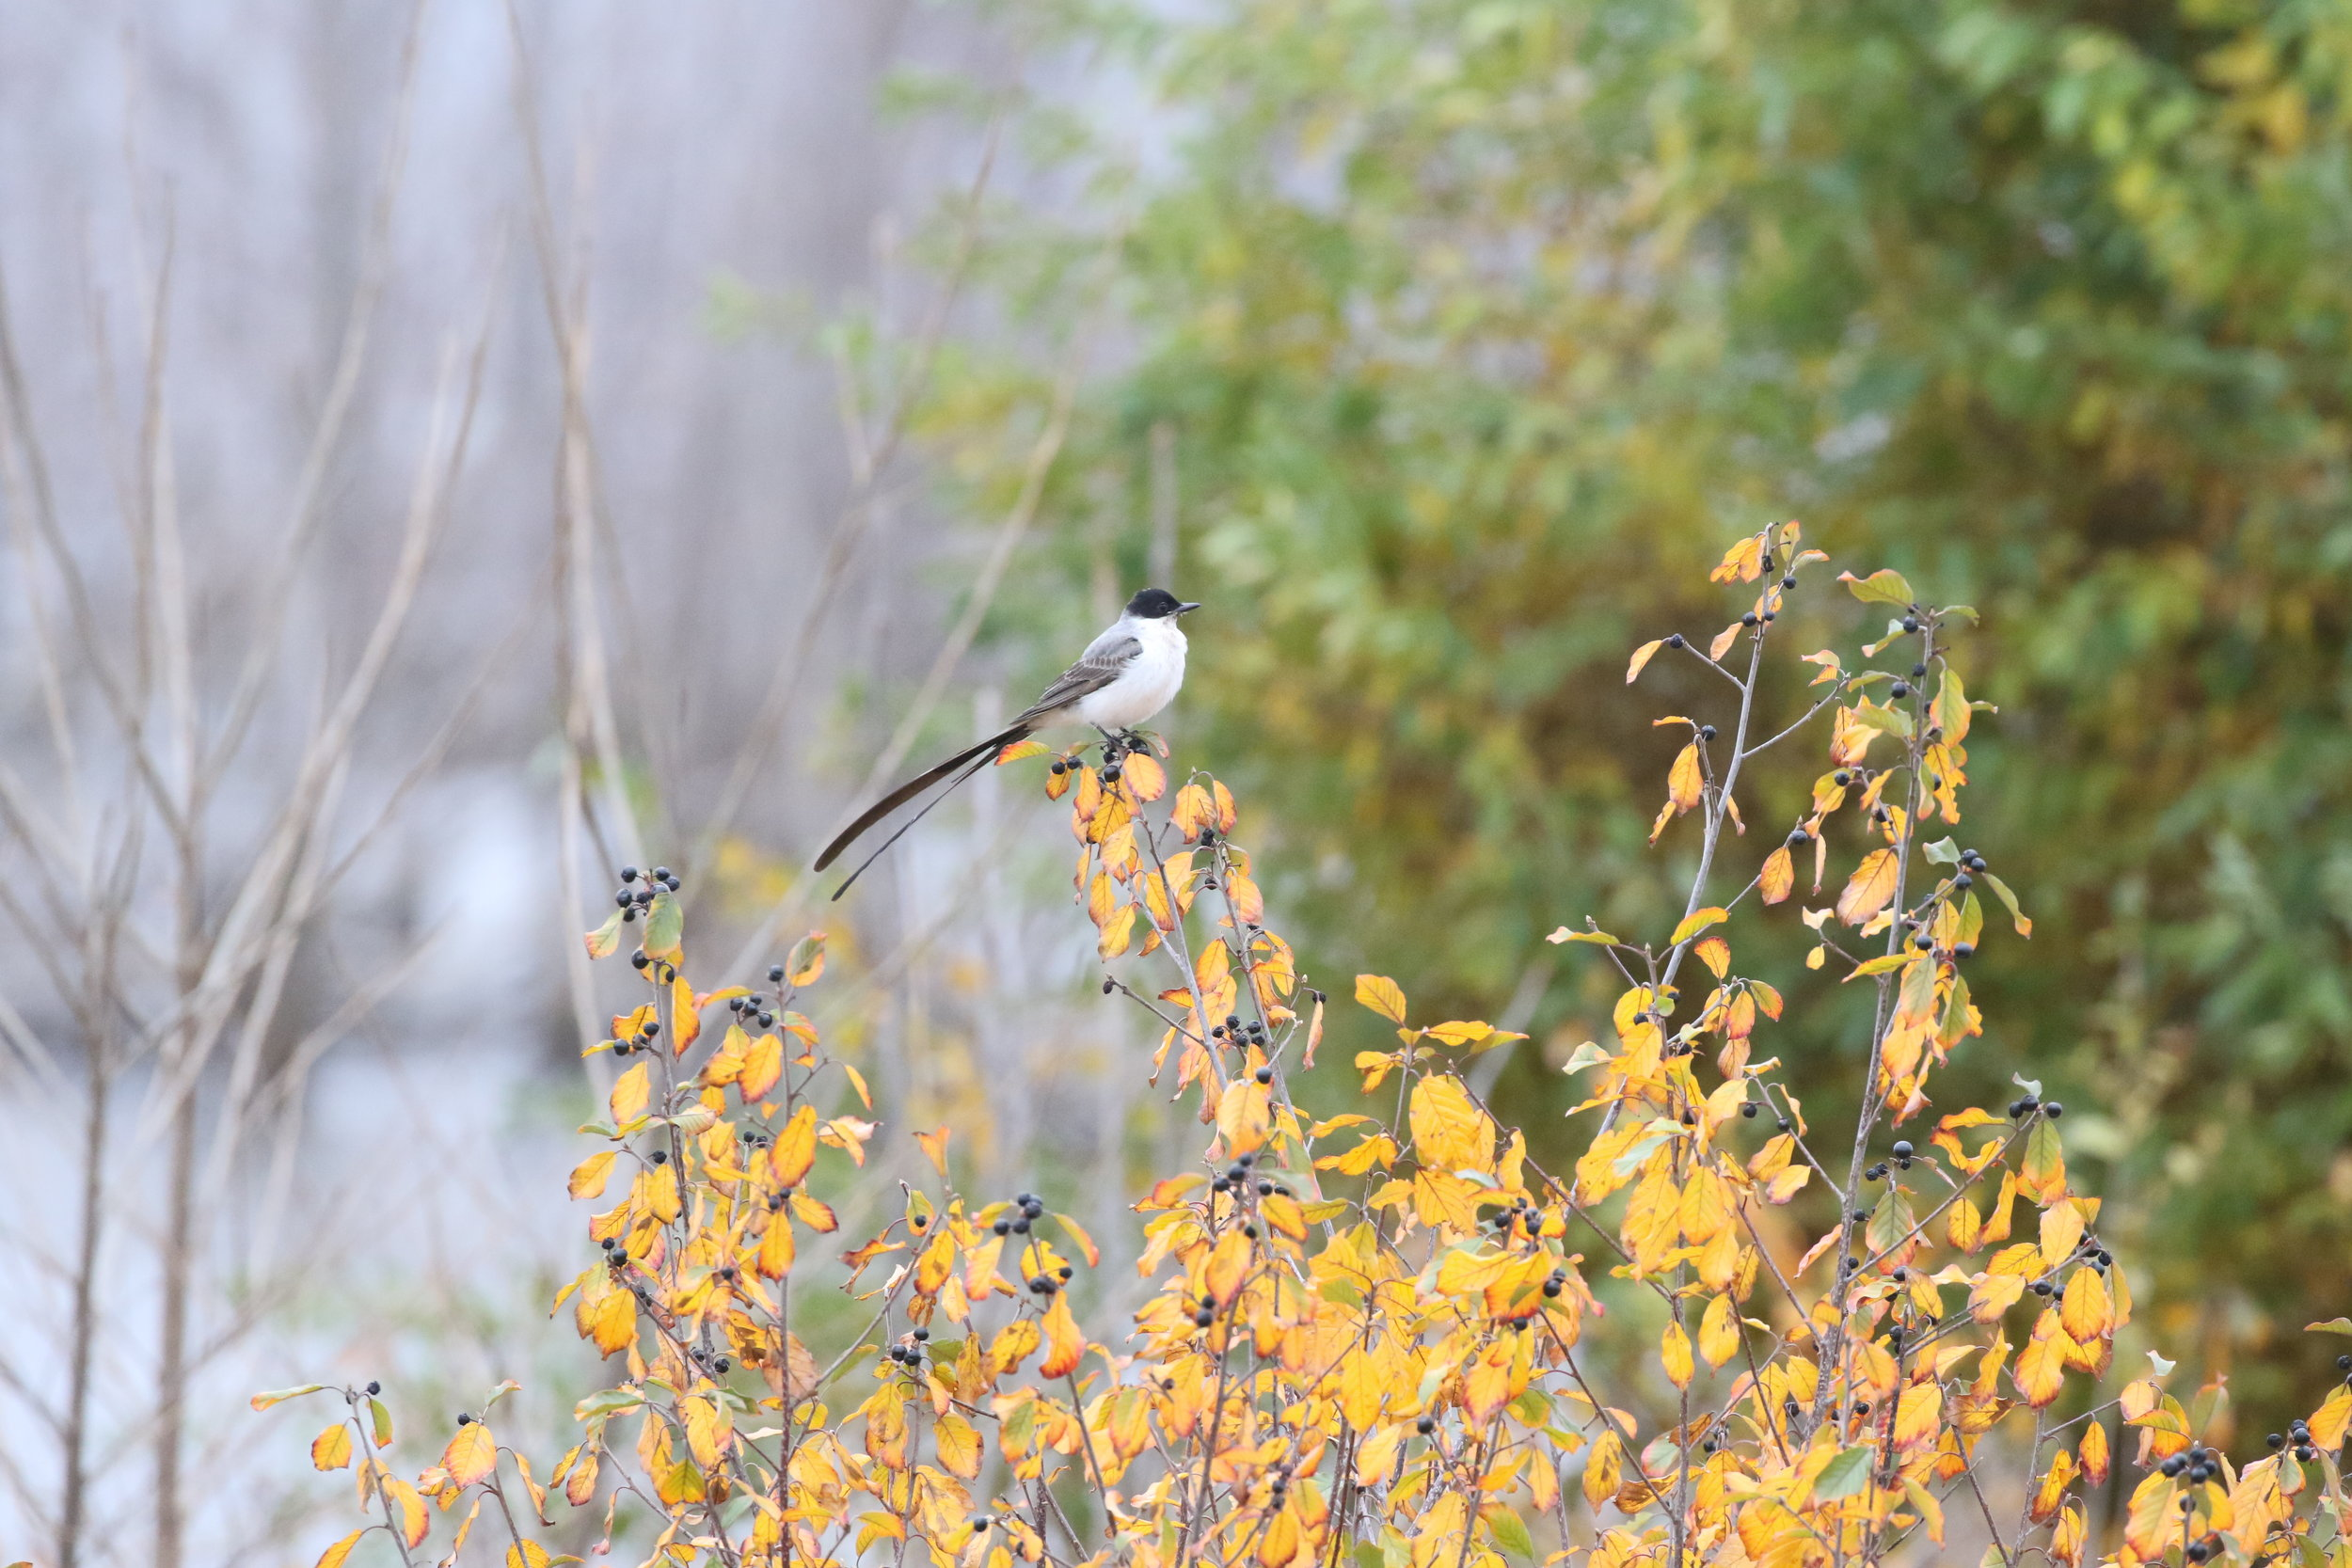 Fork-tailed Flycatcher, one of my most-wanted ABA vagrants.